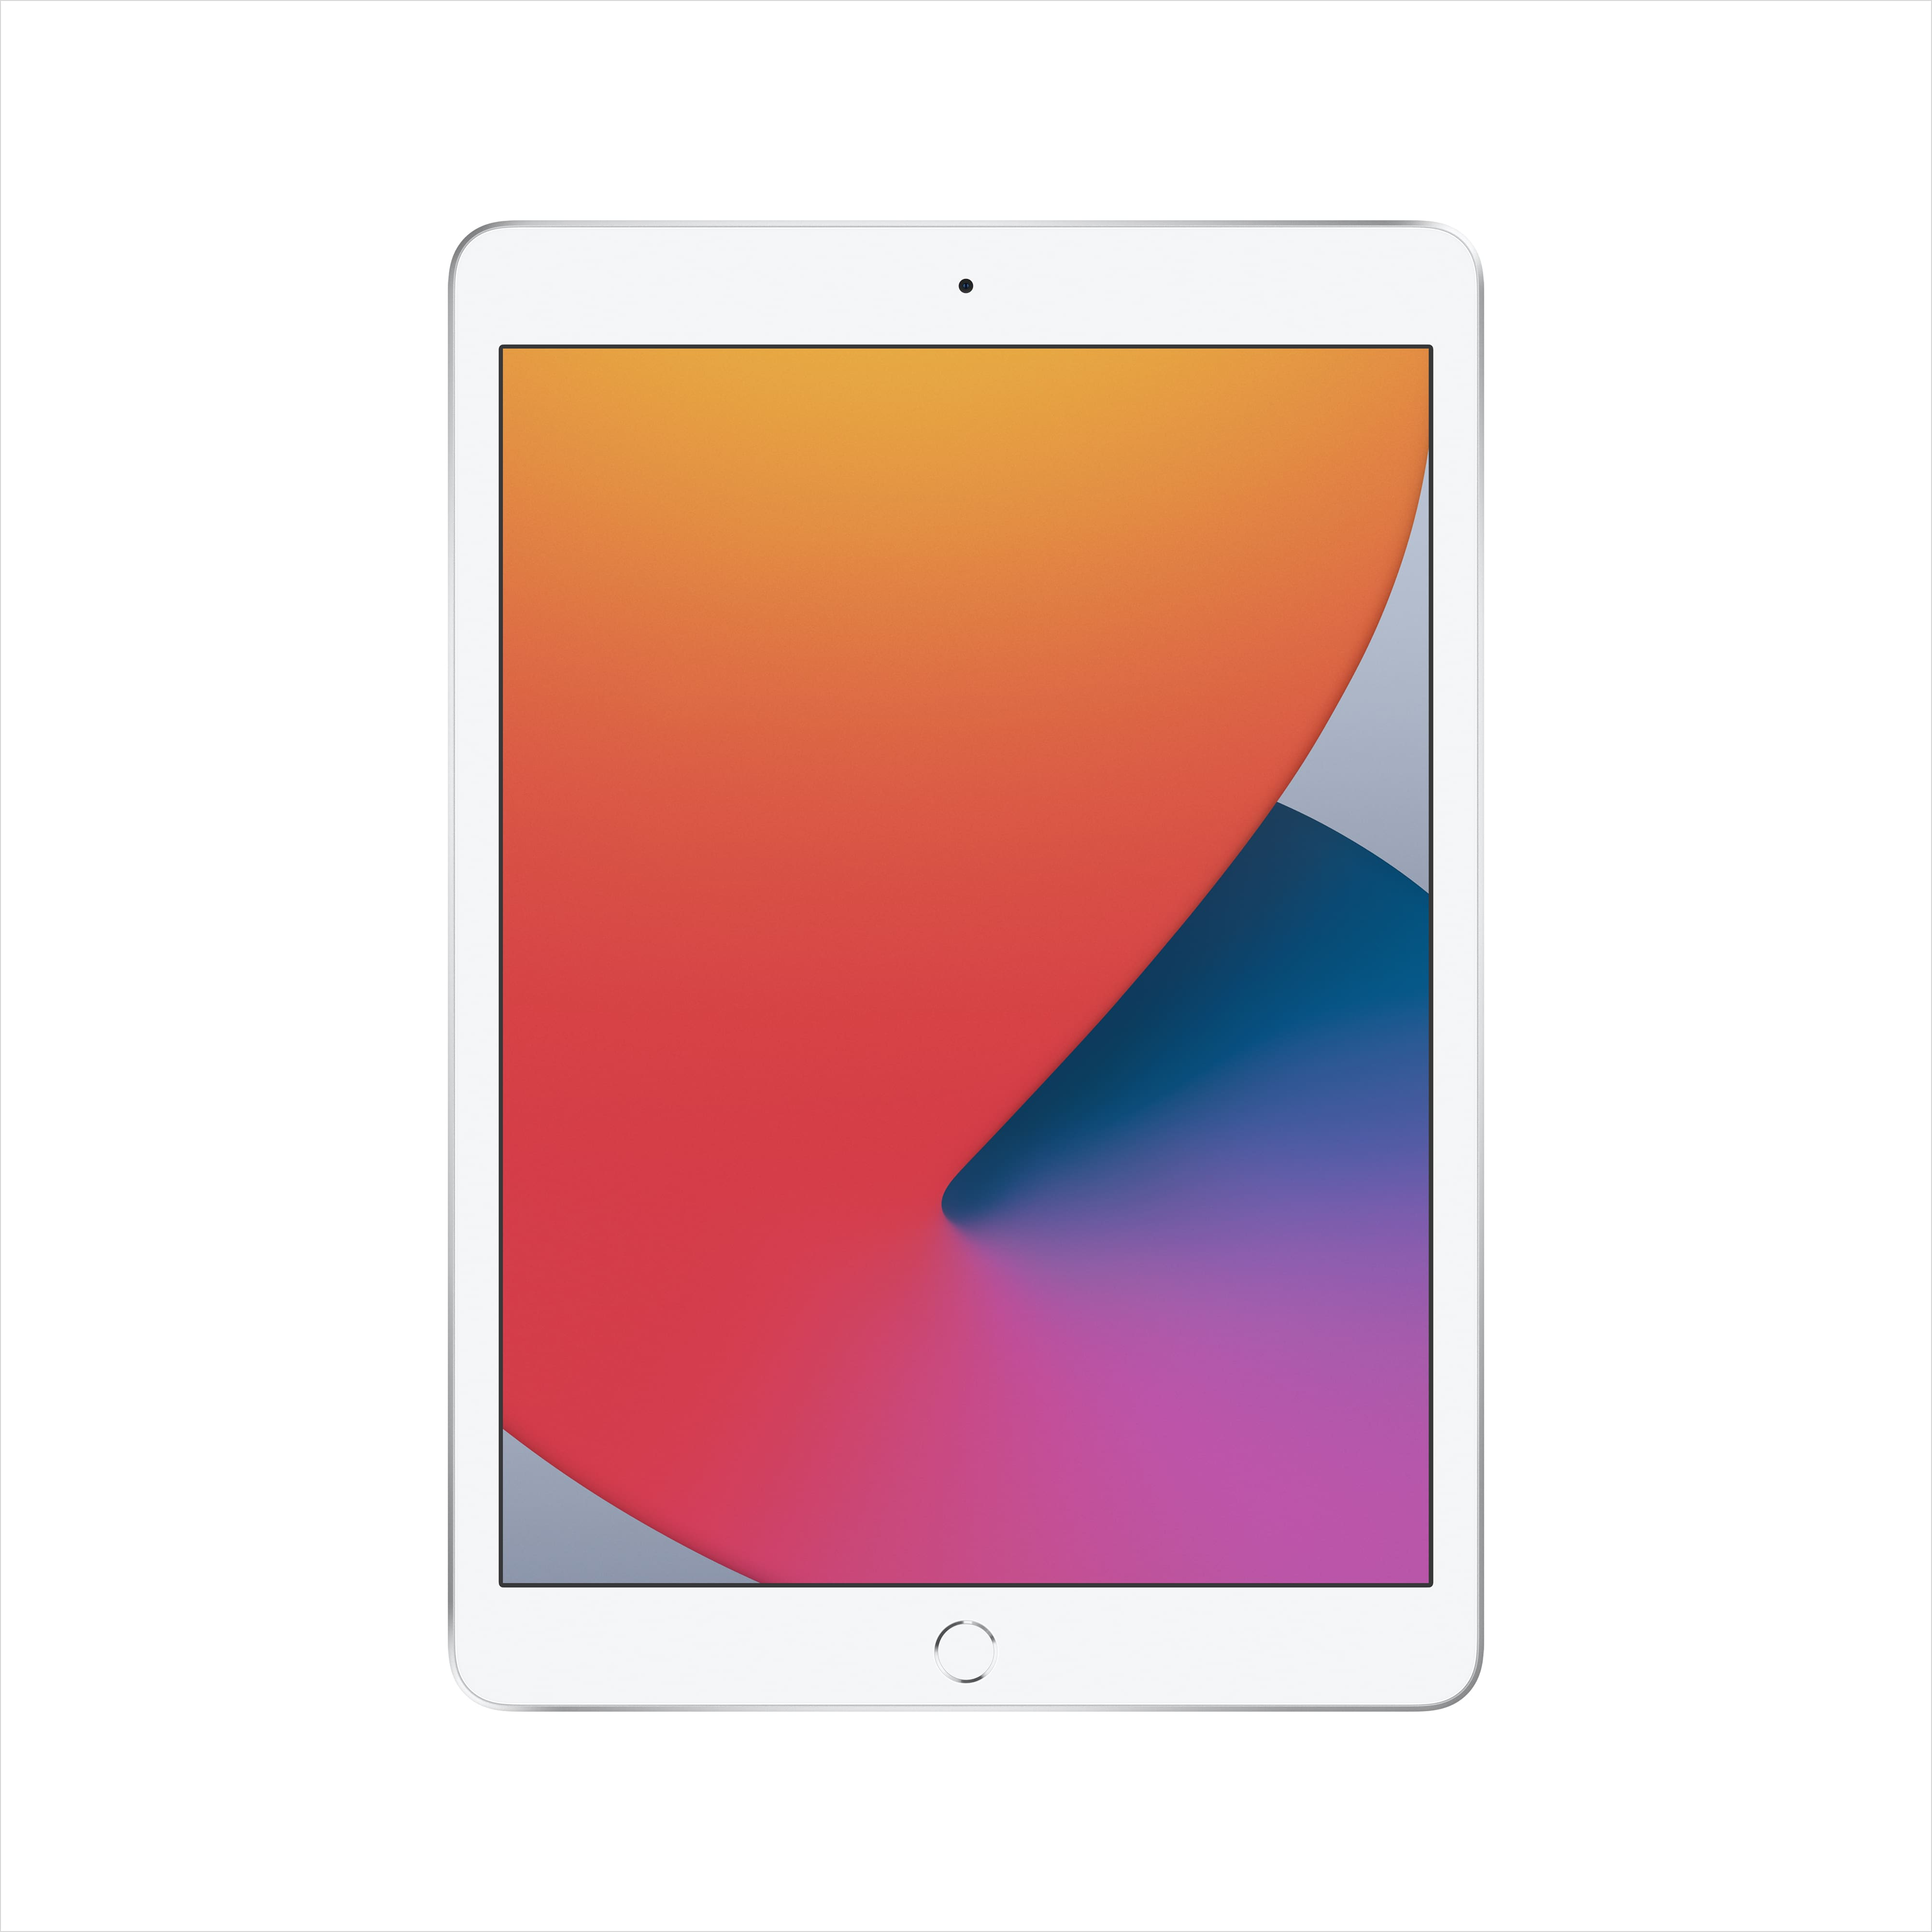 Apple 10.2-inch iPad All Colors Available (8th Gen 2020 Latest Model) Wi-Fi 32GB~$299 @ Walmart.com~Free & Fast Shipping!